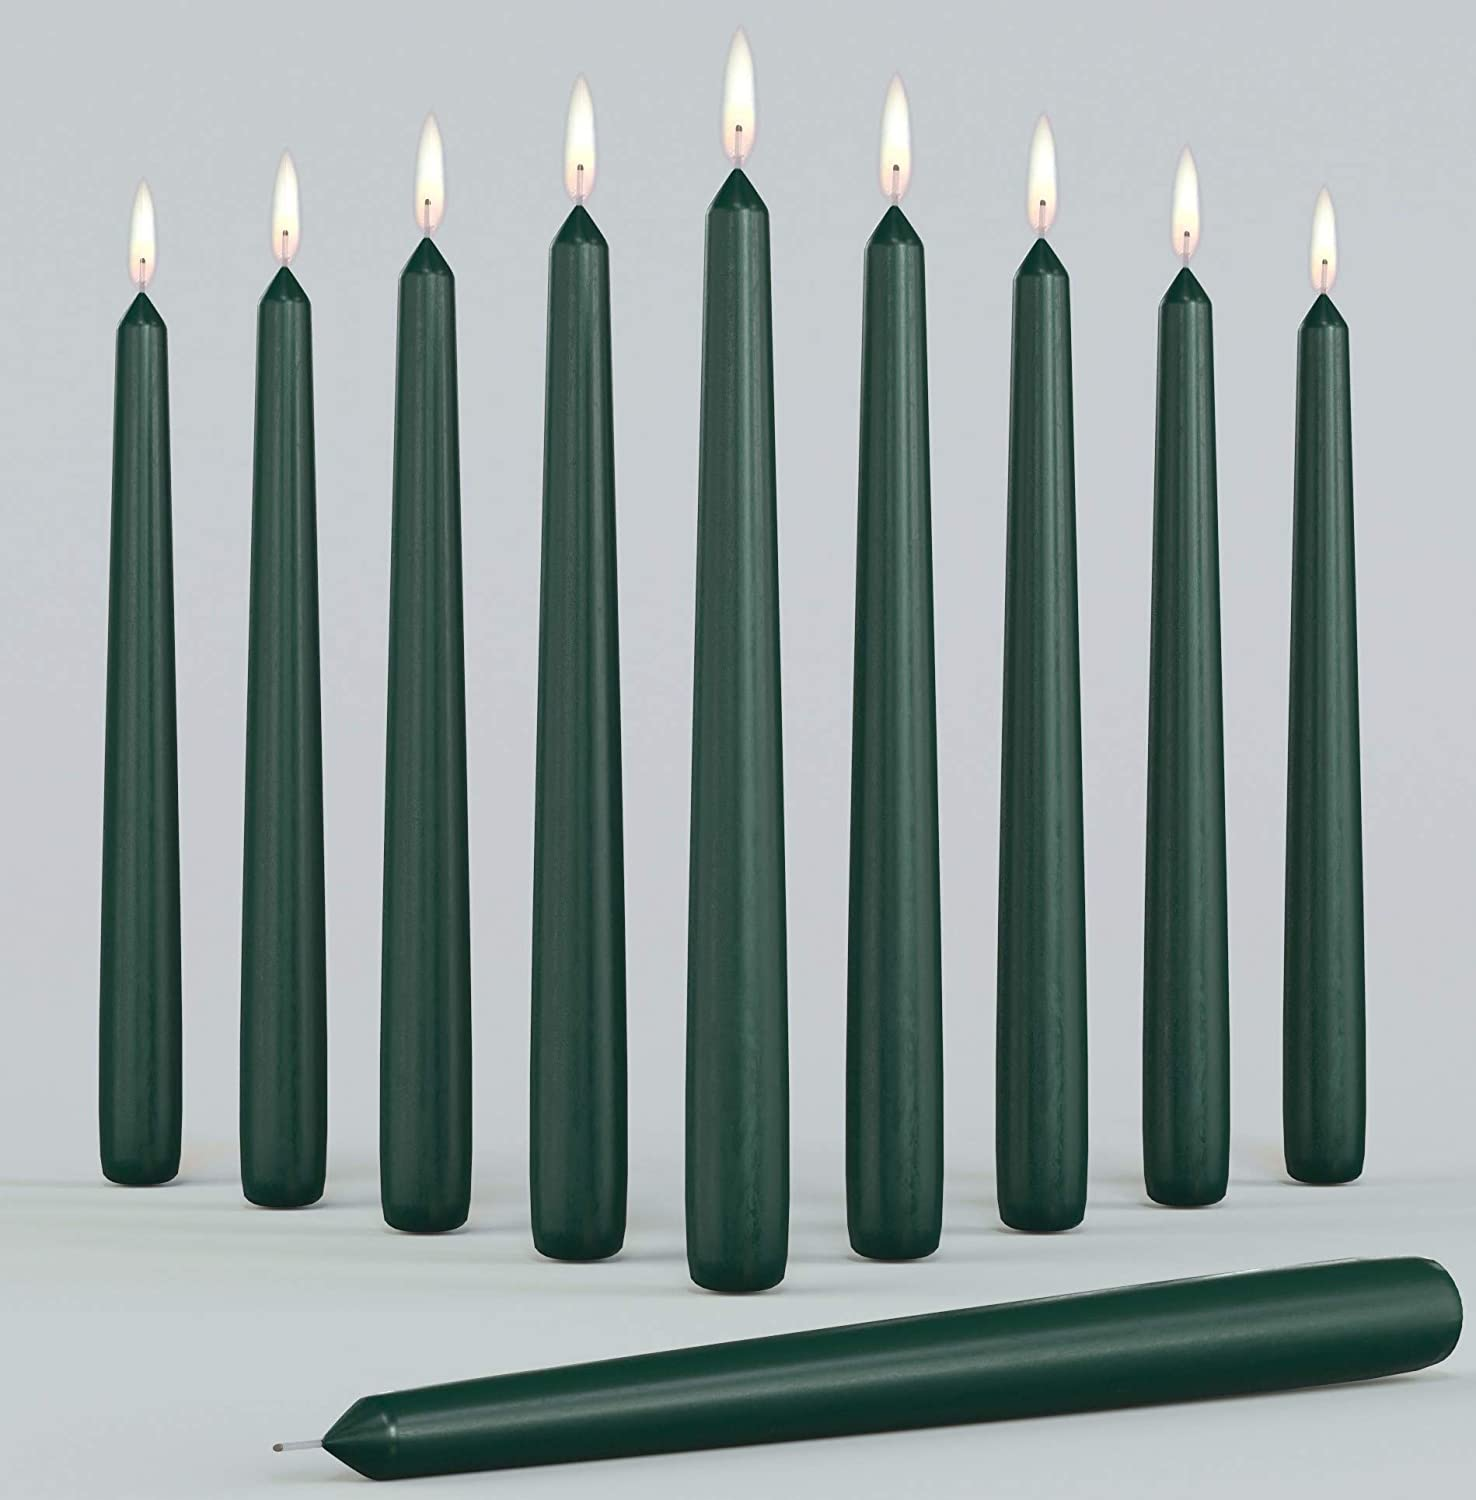 """Set of 10 Dark Green Dripless Taper Candles 10"""" Inch Unscented Tall Dinner Candles for Wedding Restaurant Home Decoration Spa Church Smokeless with Cotton Wicks"""